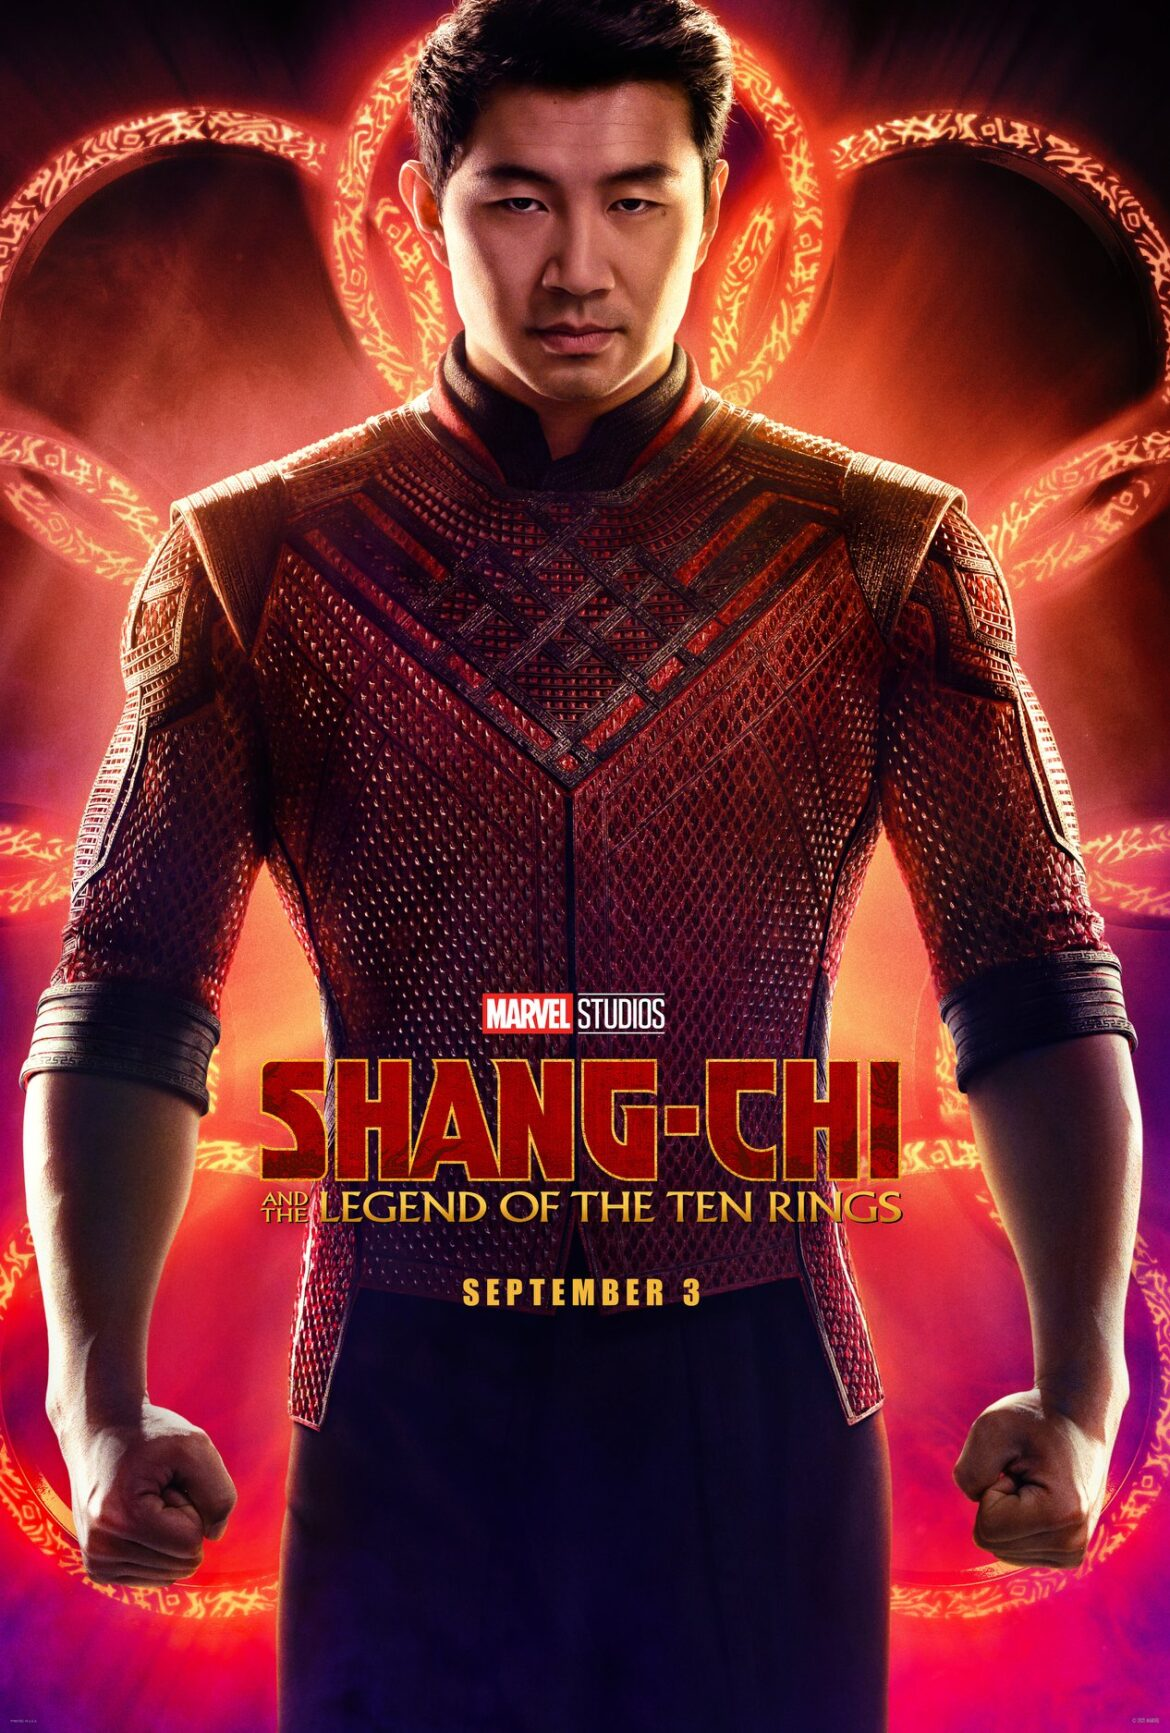 Trailer and Movie Poster: Shang-Chi and the Legend of the Ten Rings